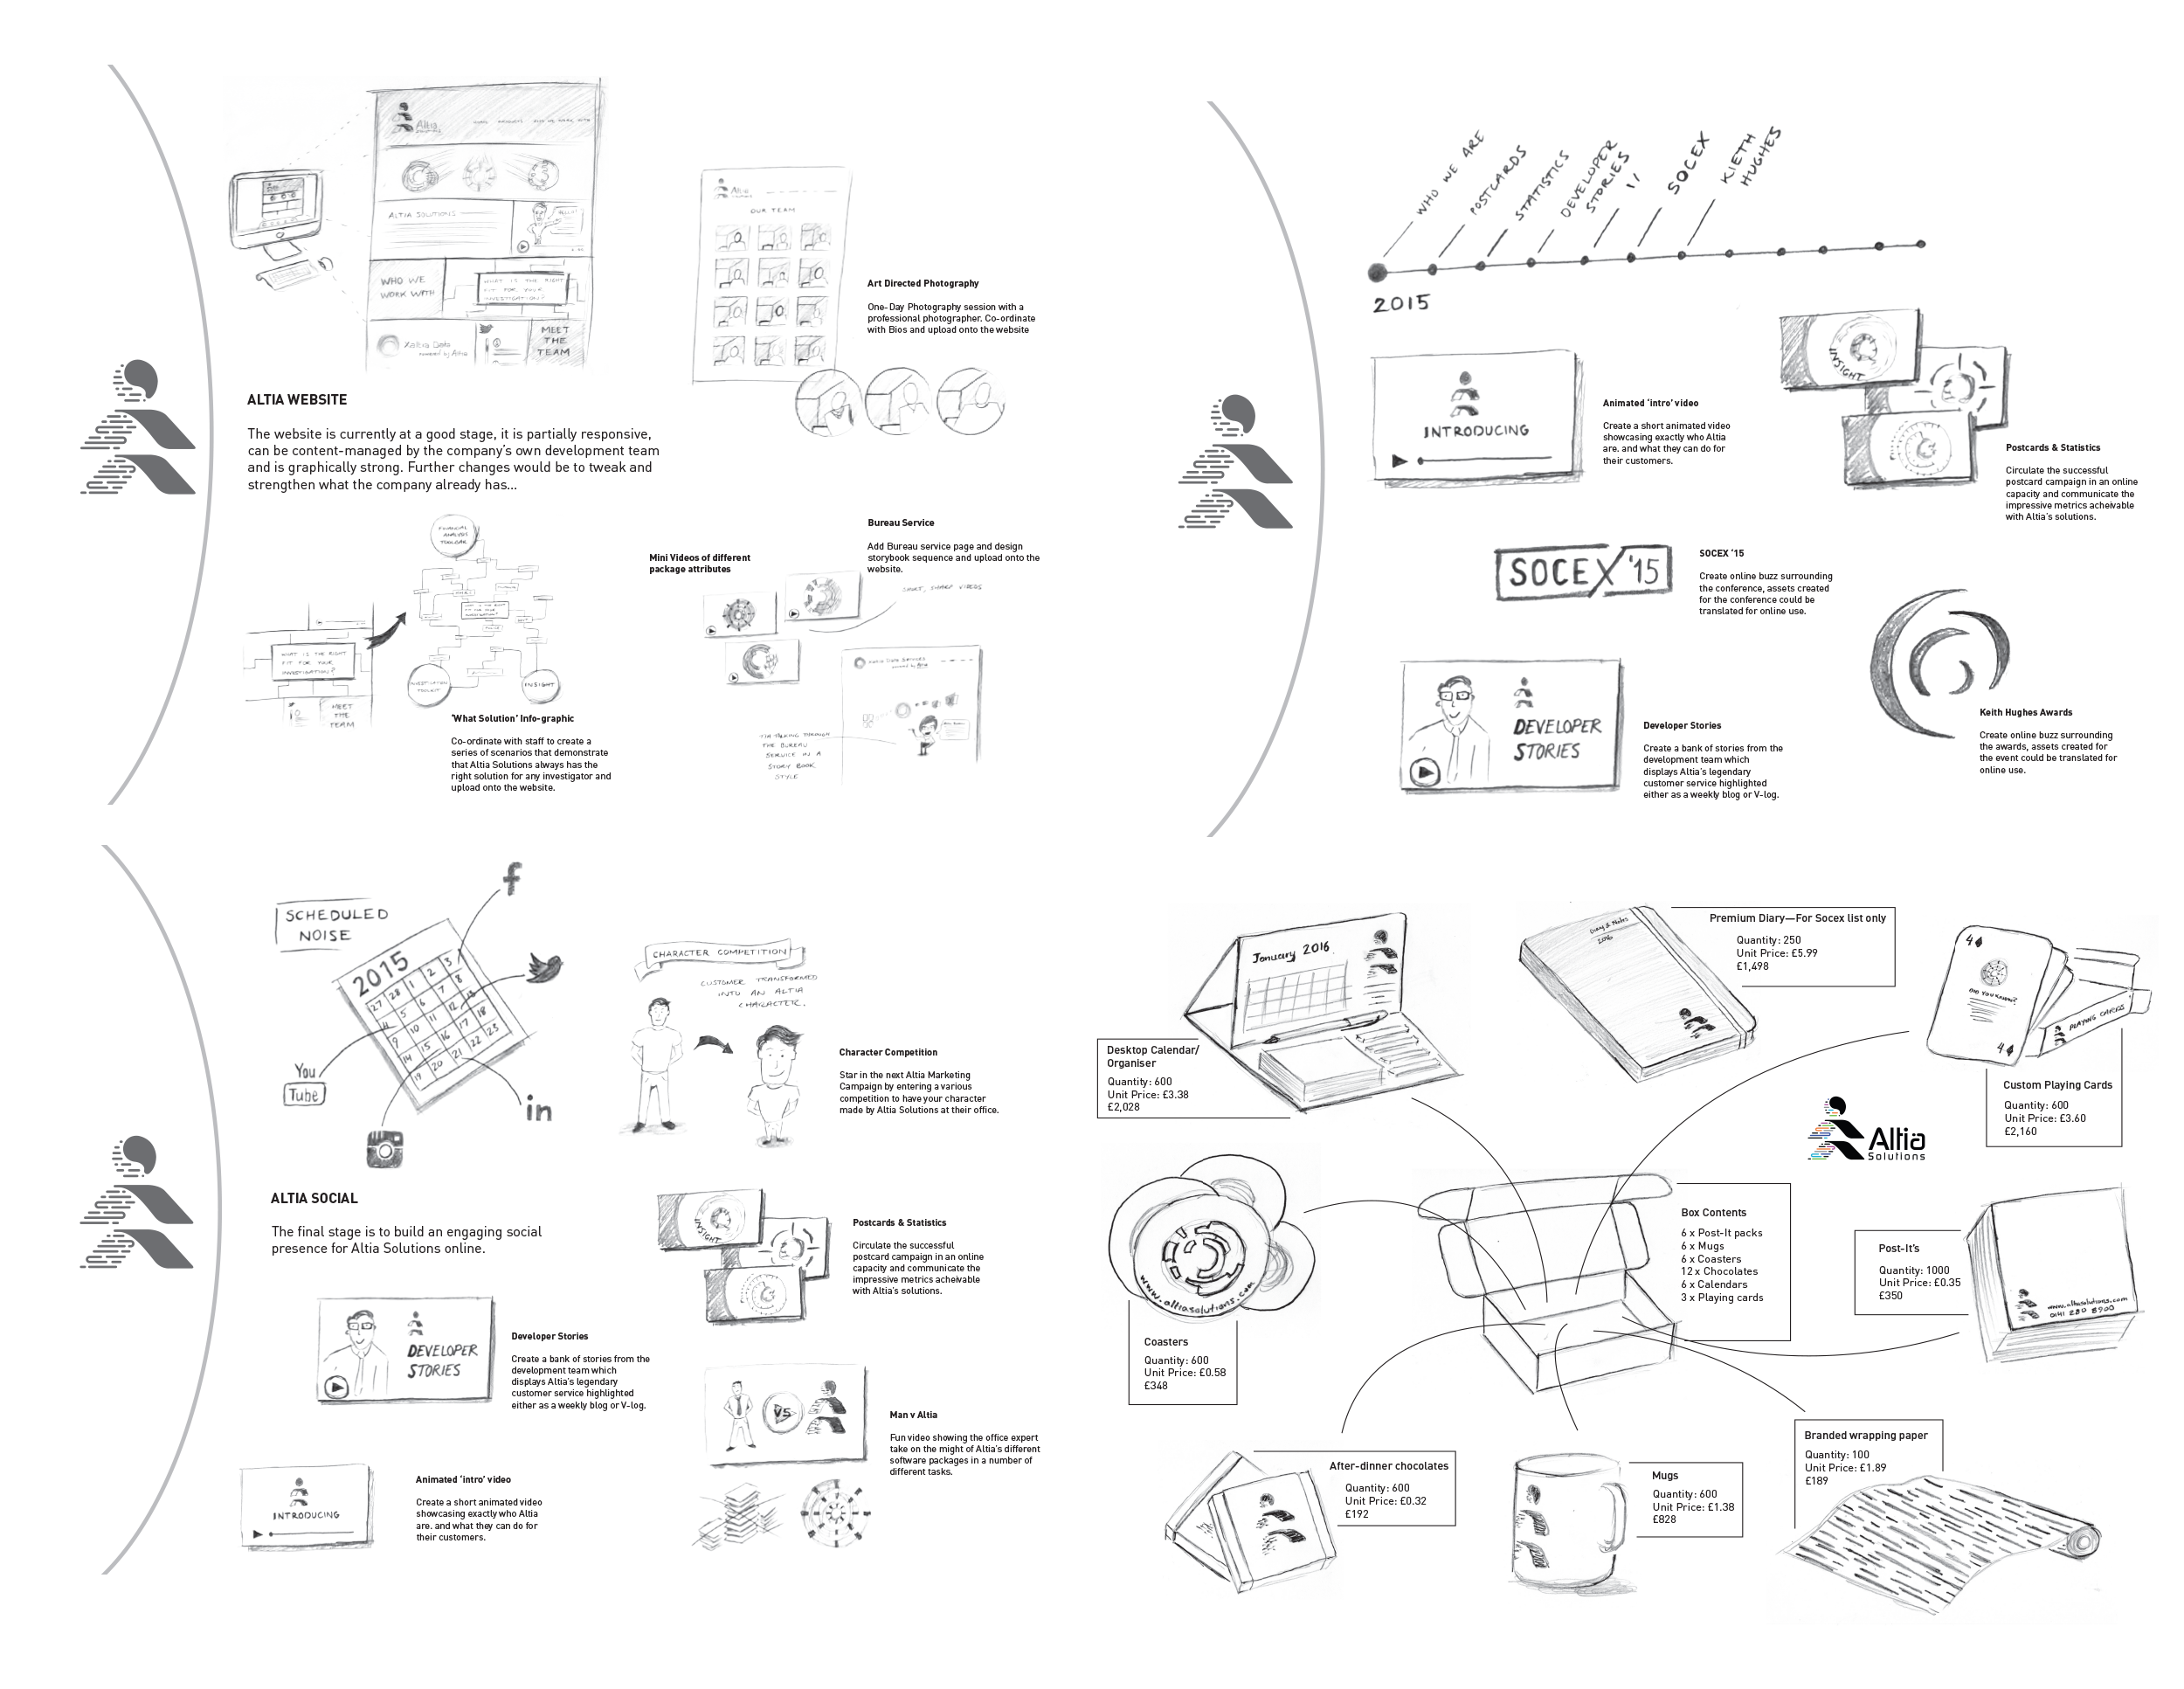 A case-study summary of our software marketing and branding work with Altia-ABM. The importance of hero graphics, retention, values and so much more. Sketches.